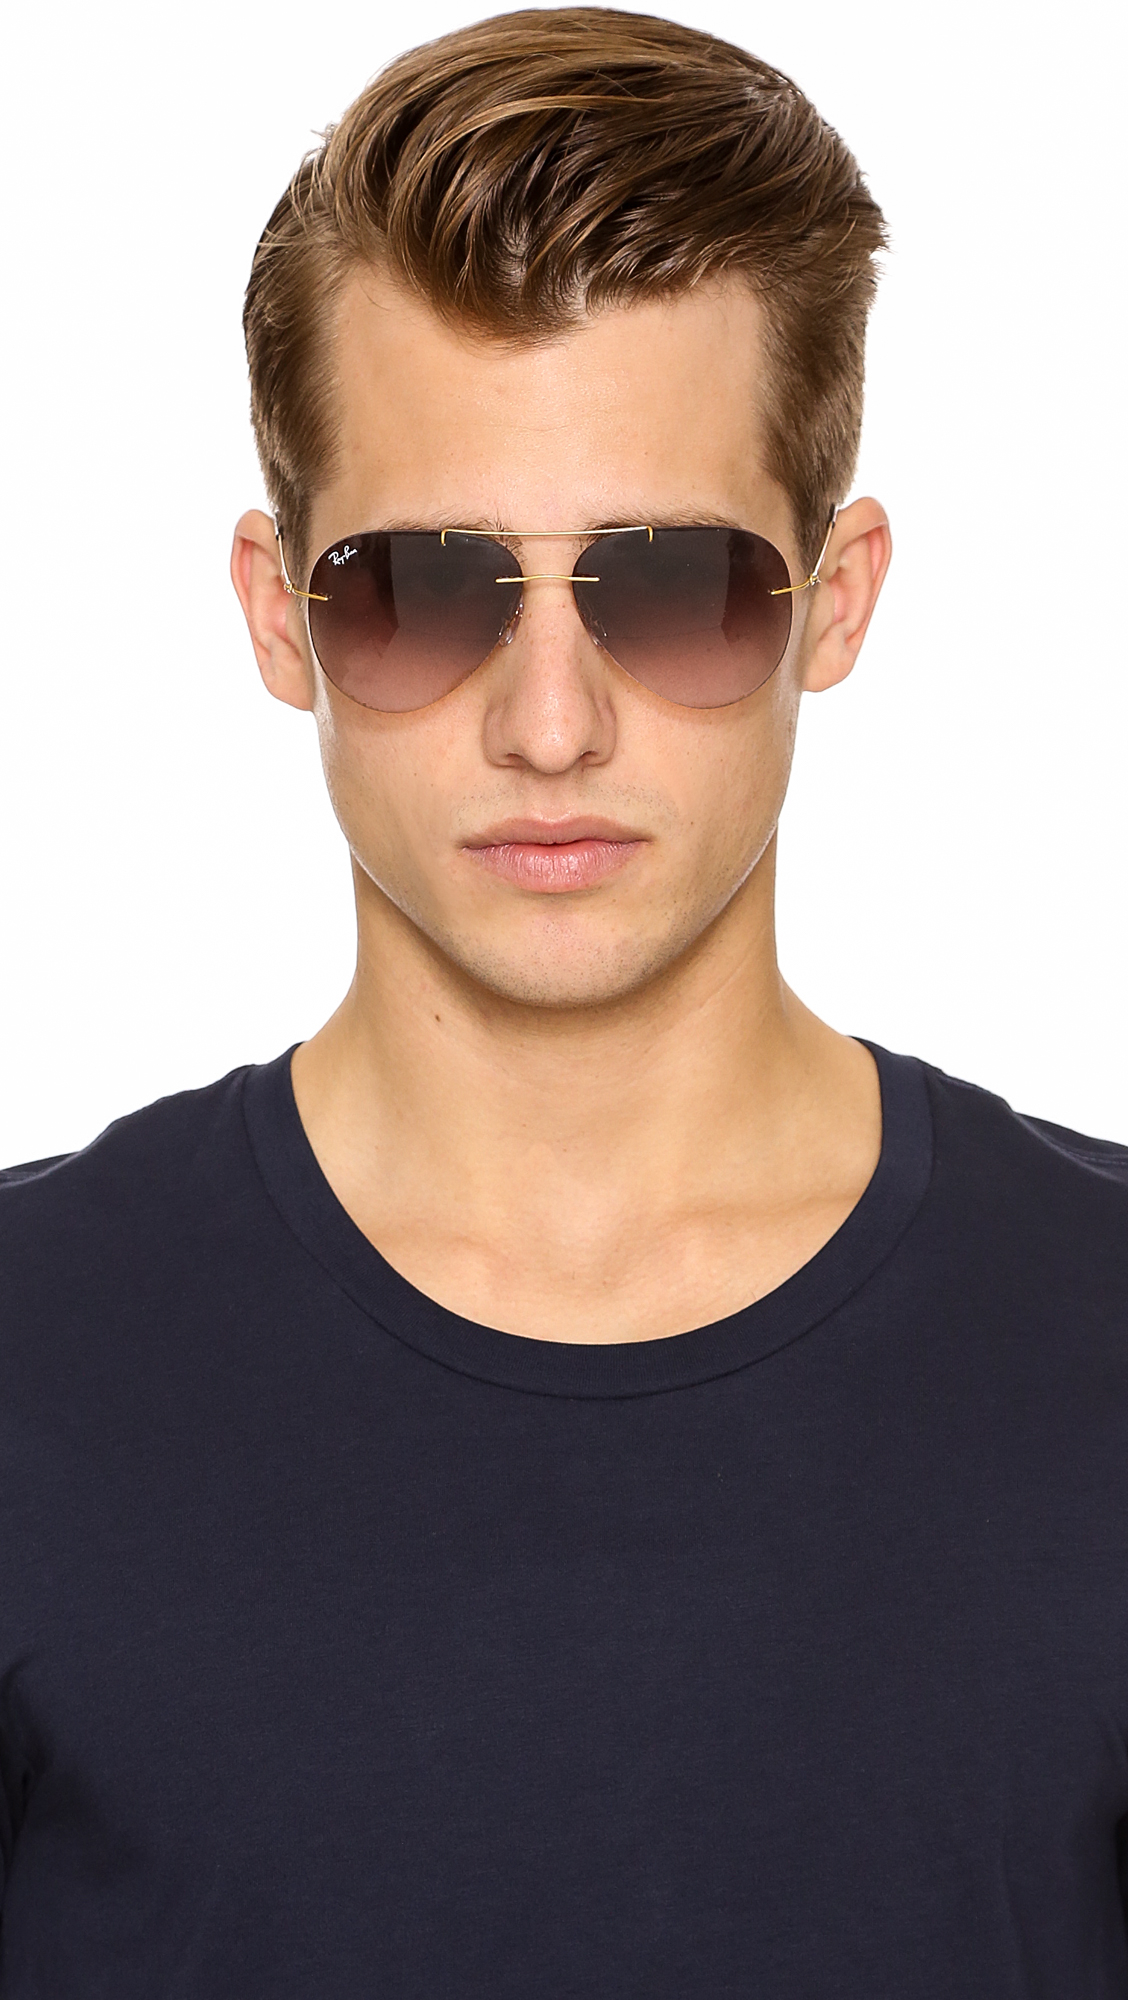 Mens Ray Ban Aviator Sunglasses  ray ban light tech aviator sunglasses in metallic for men lyst